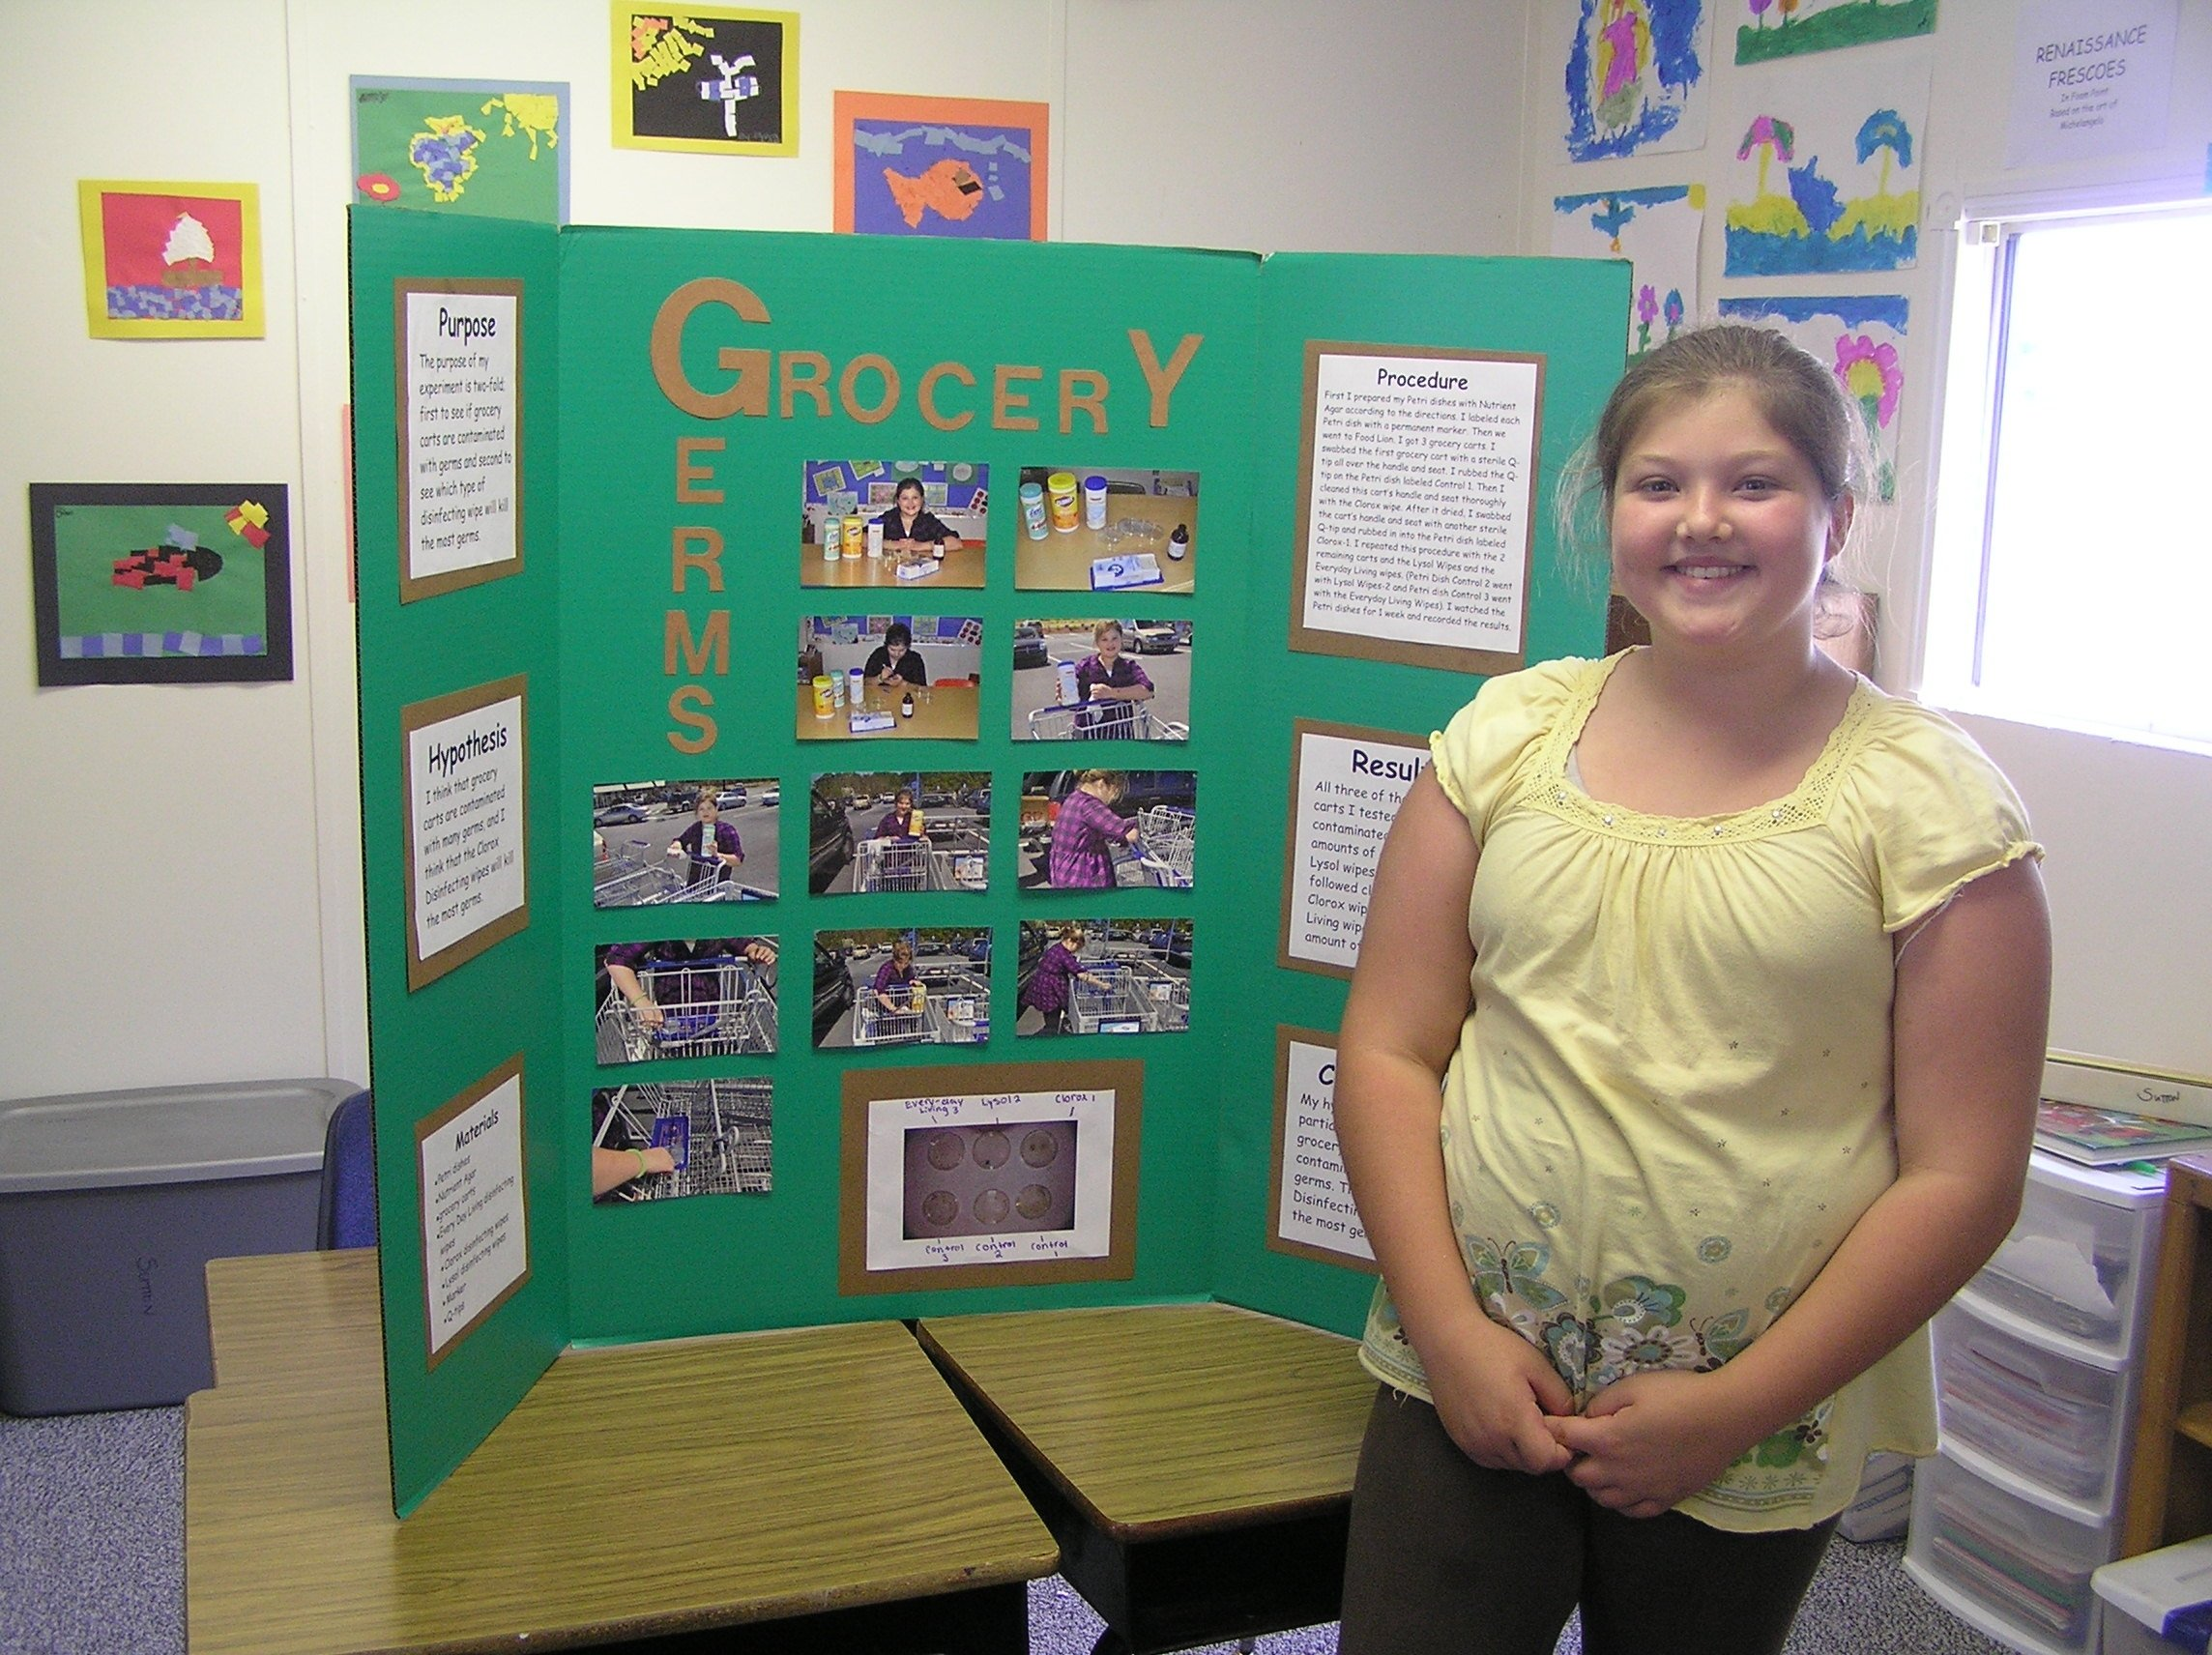 10 Attractive Science Fair Project Ideas For 8Th Grade List grocery germs whats on that cart handle science fair 9 2020